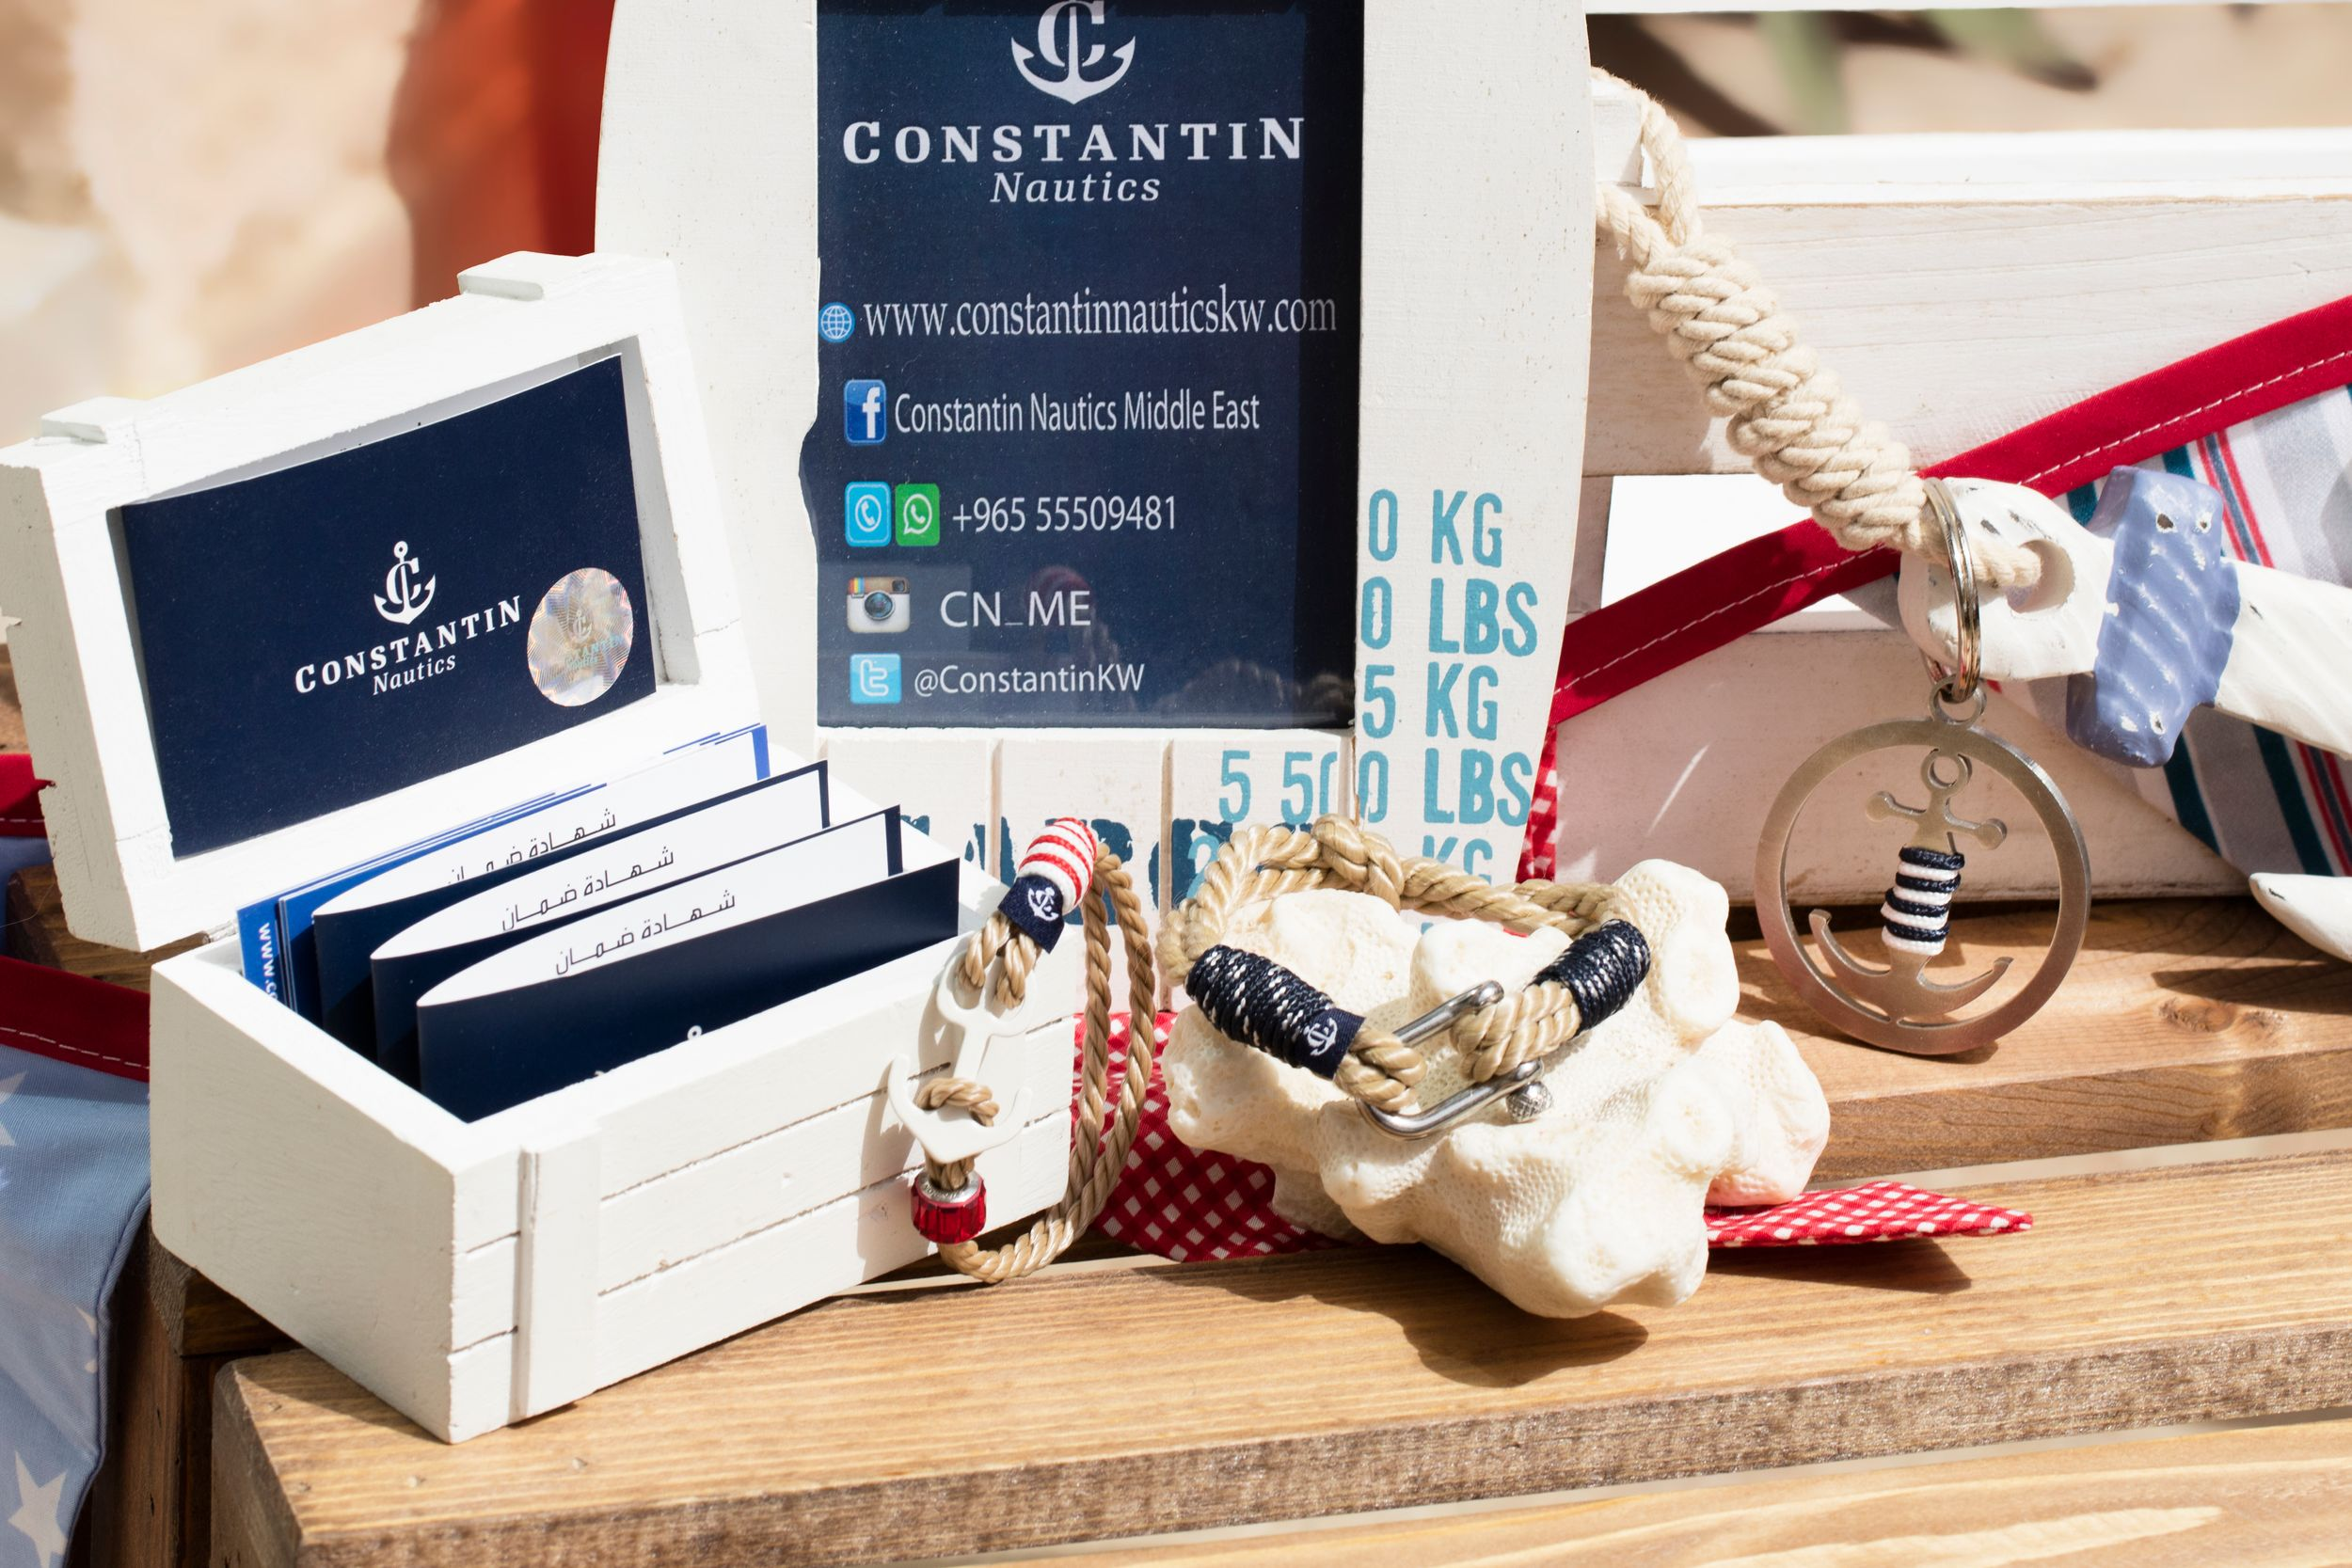 product photography for Constantin Nautics